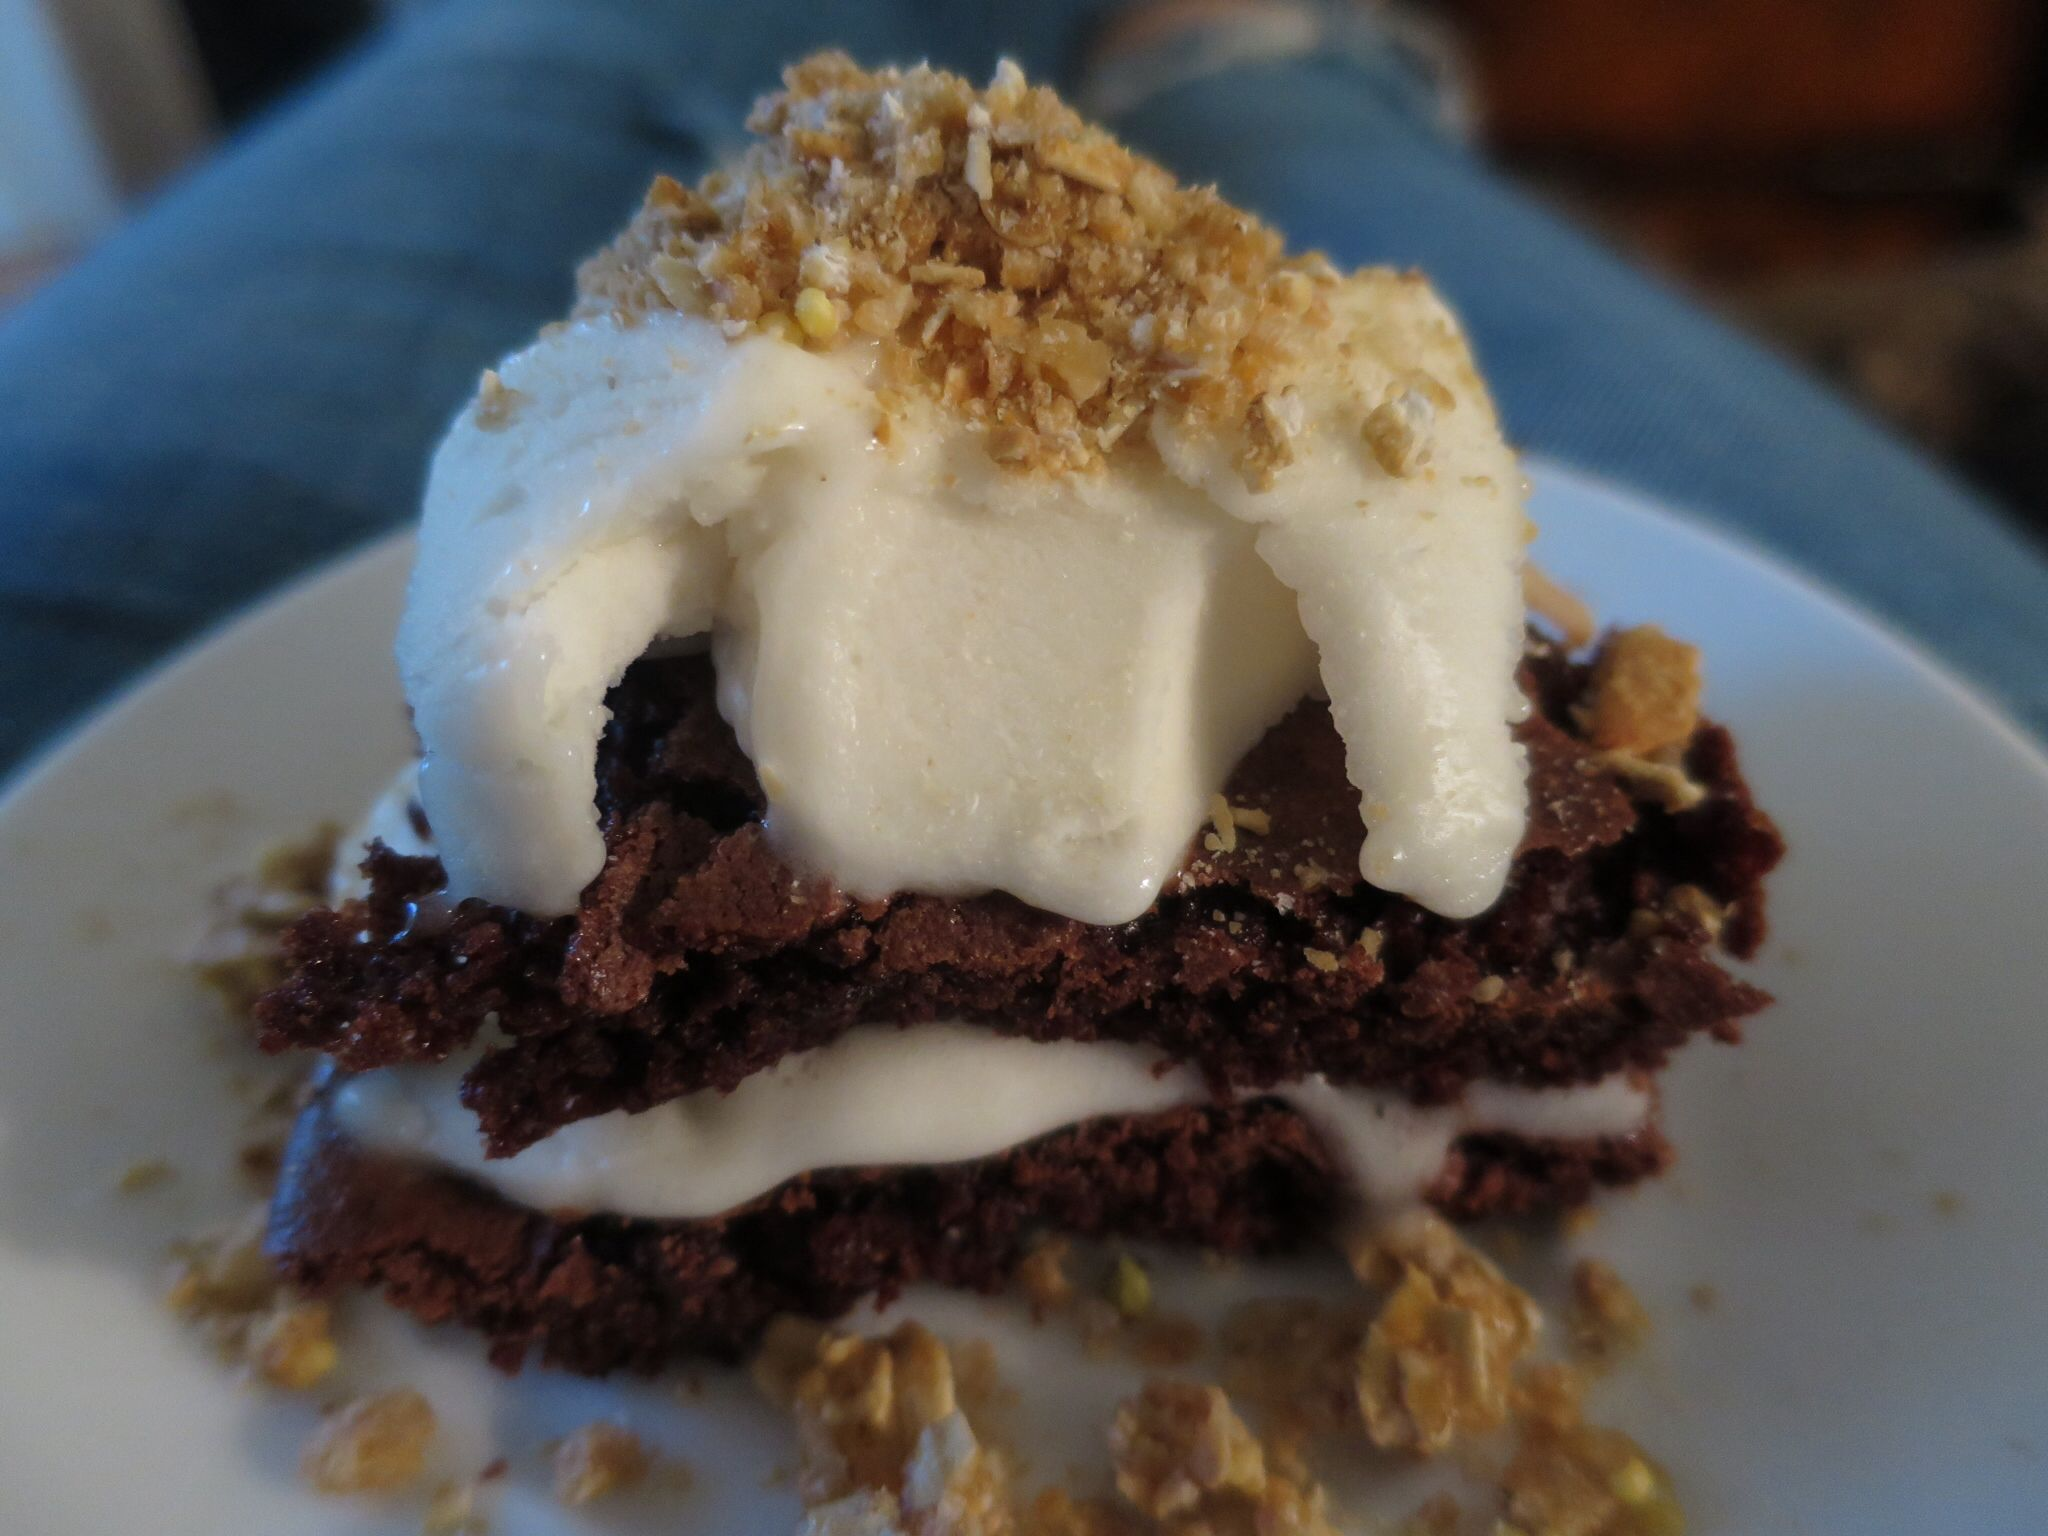 Brownie ice cream sandwich topped with granola!  Classic and simple dessert.